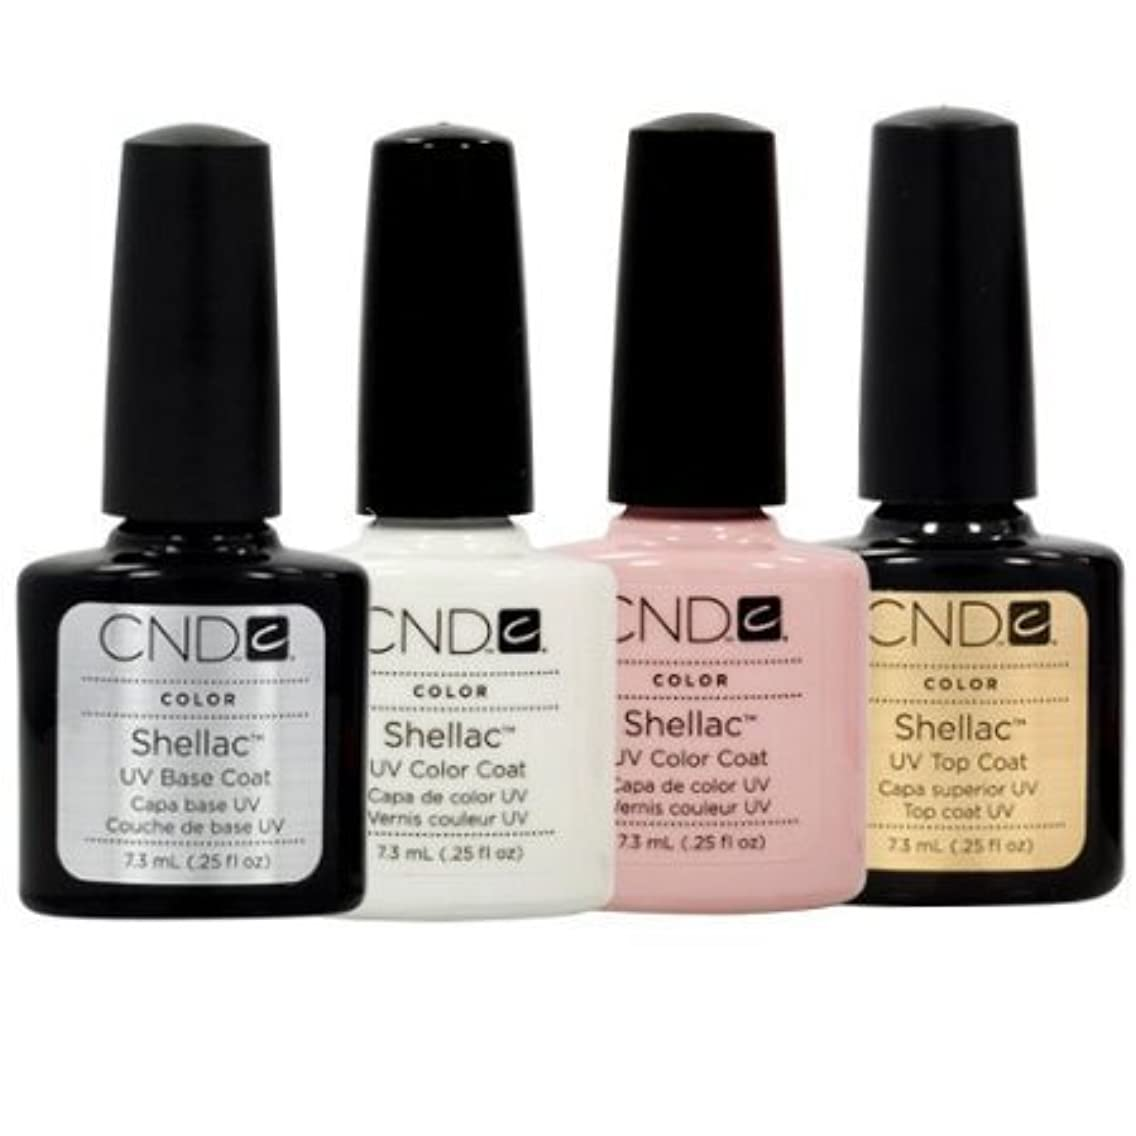 そっと霊一般的に言えばCND Shellac French Manicure Kit Base Top Coat Color White Pink Nail Polish Gel by CND - Creative Nail Design [...